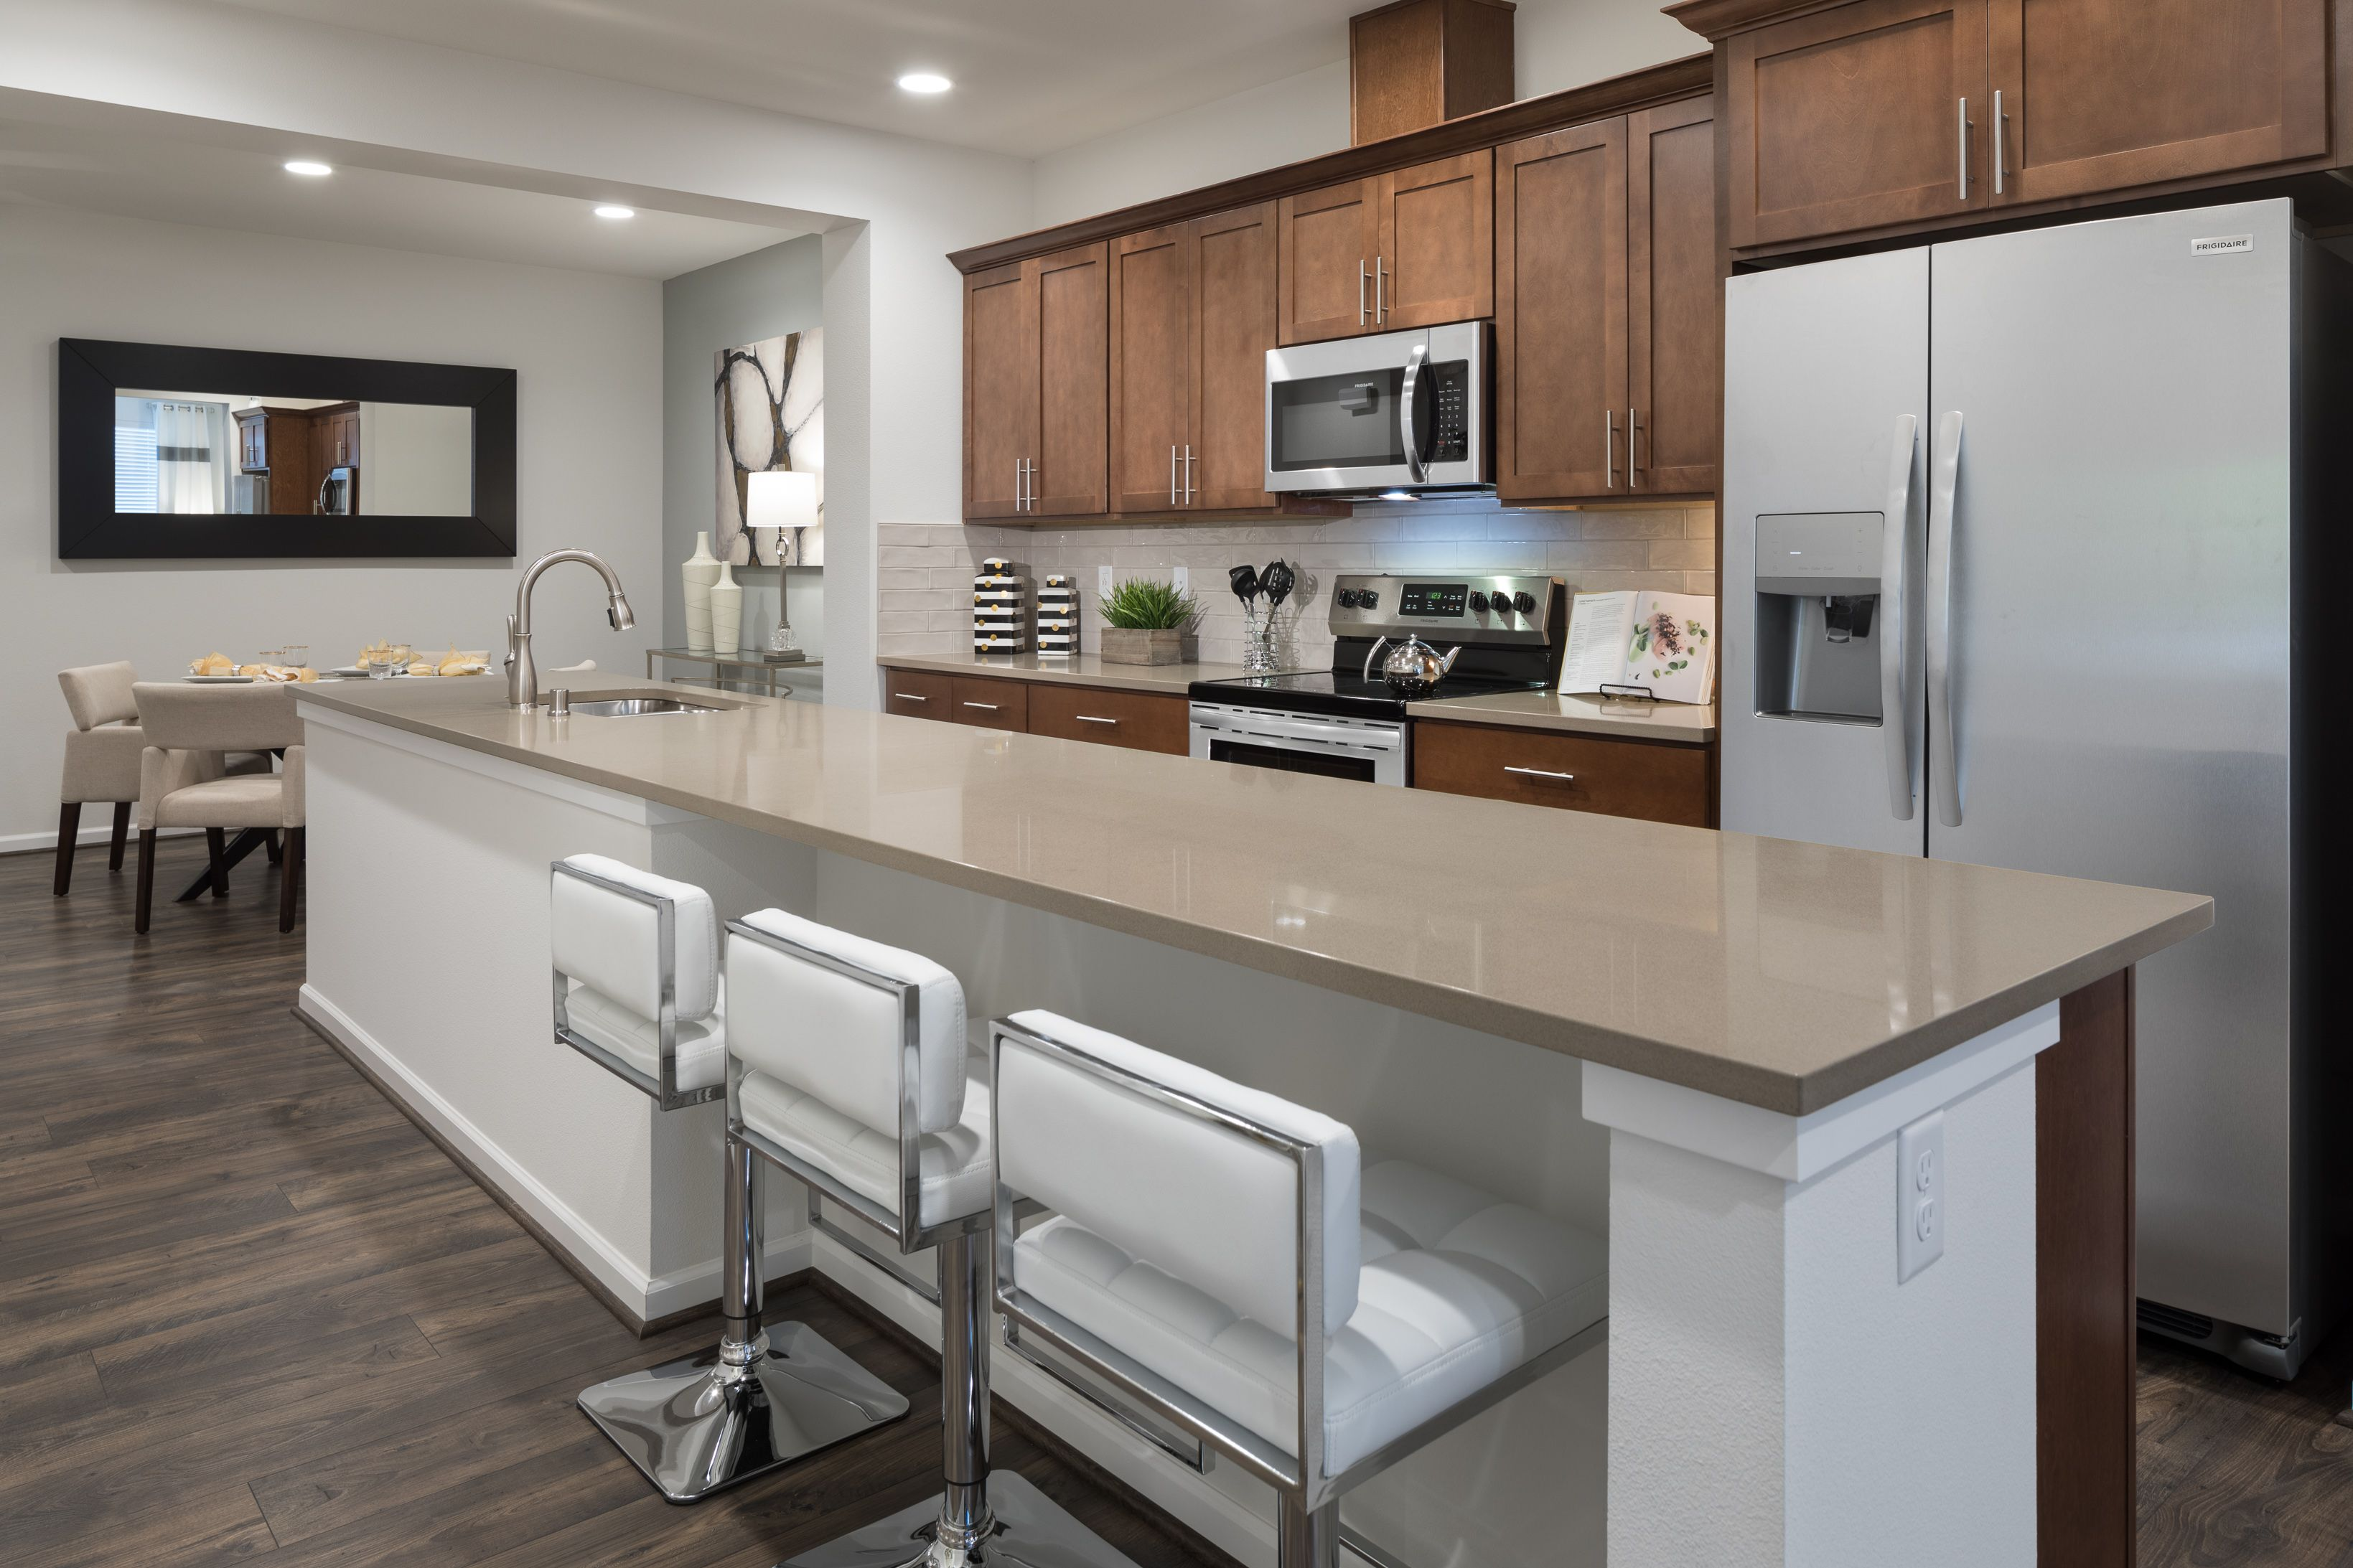 Kitchen featured in the Alba WLH By Taylor Morrison in Seattle-Bellevue, WA